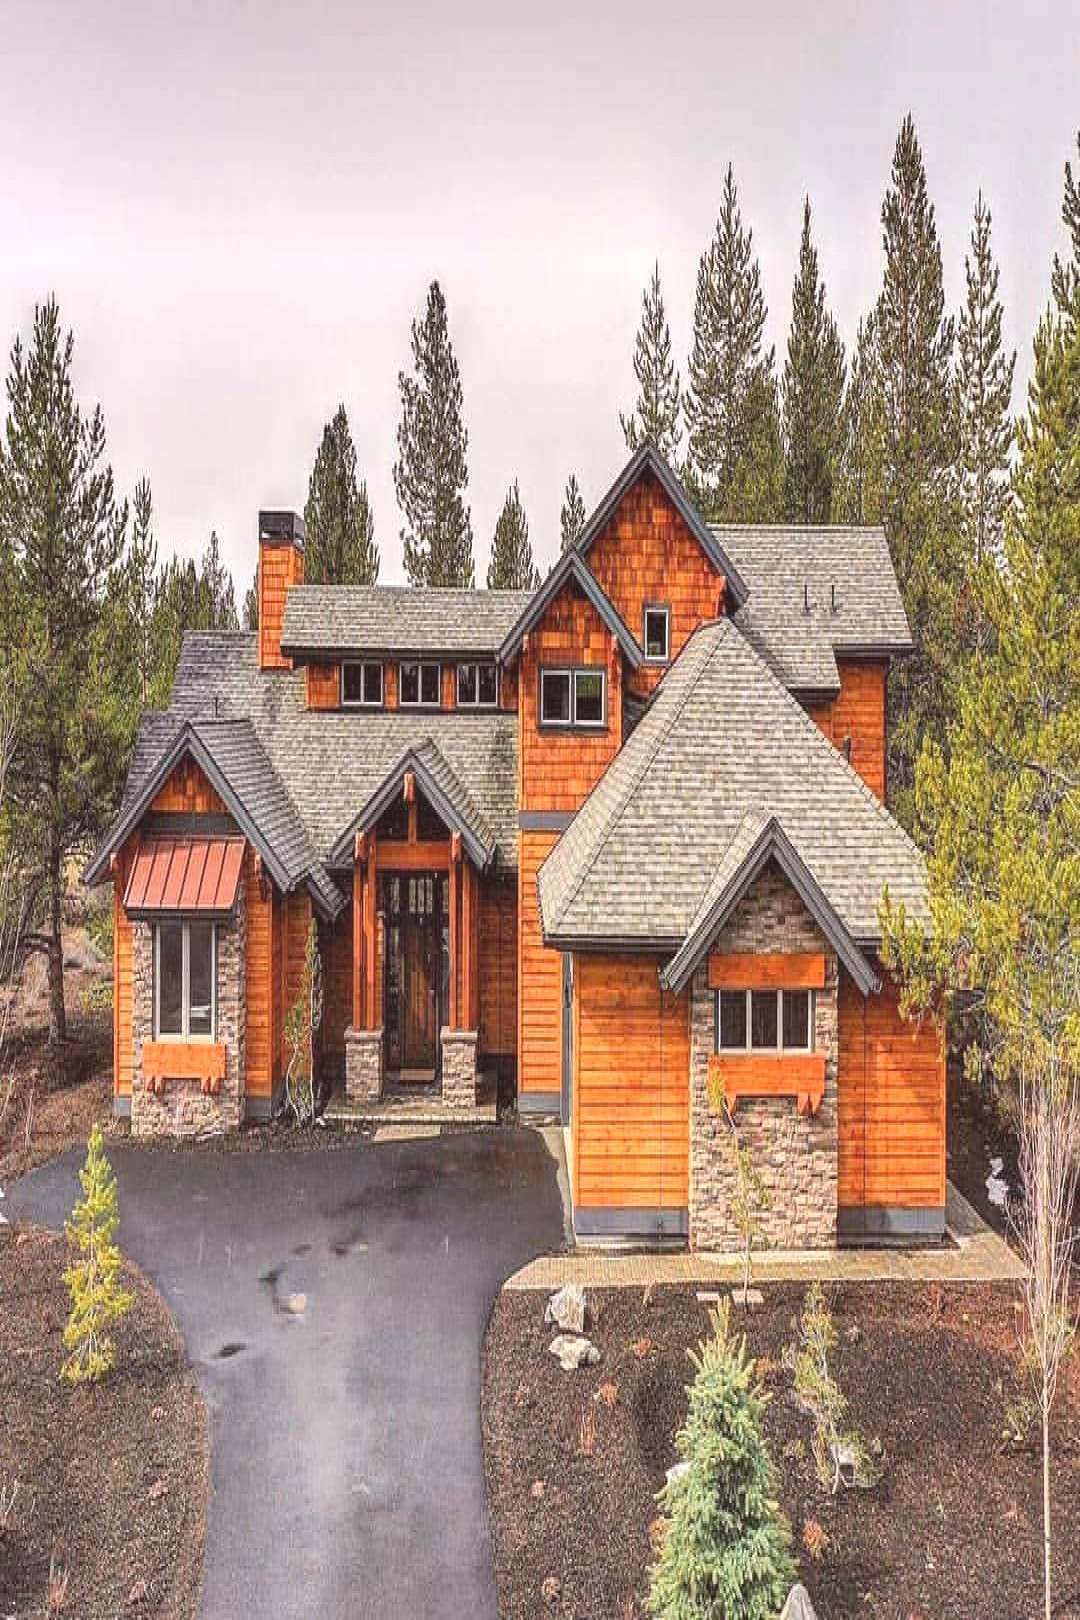 Craftsmanstyle Outdoor House Sky And House Sky And Outdooryou Can Find Craftsman Style And More In 2020 Craftsman House Craftsman House Plan Craftsman House Plans